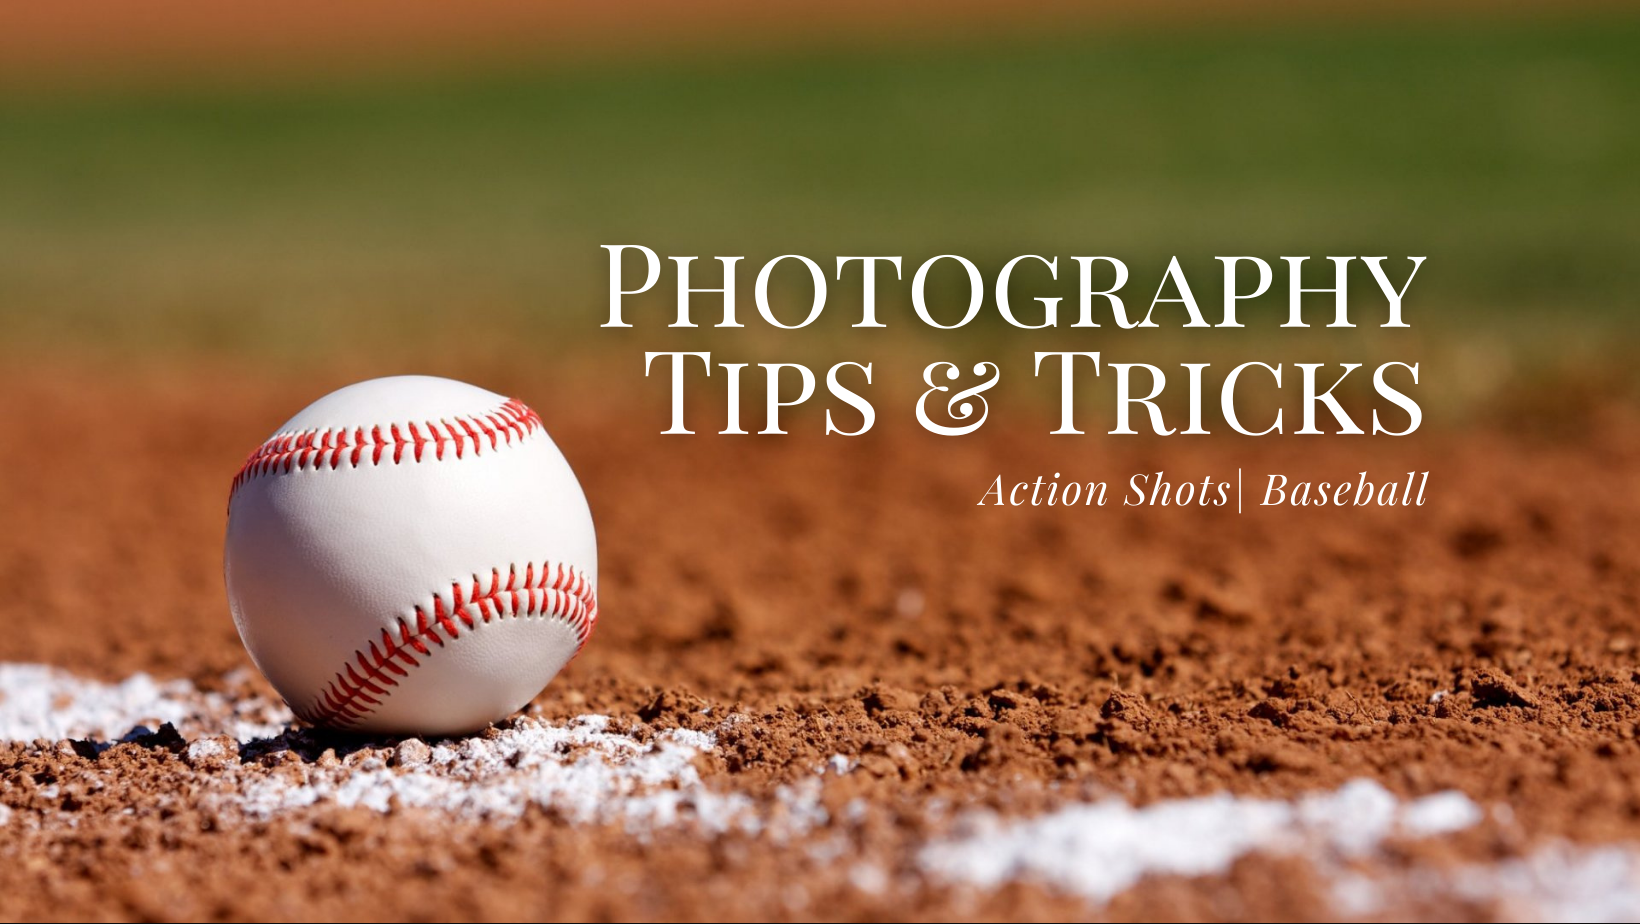 Tips & Tricks for Action Shots